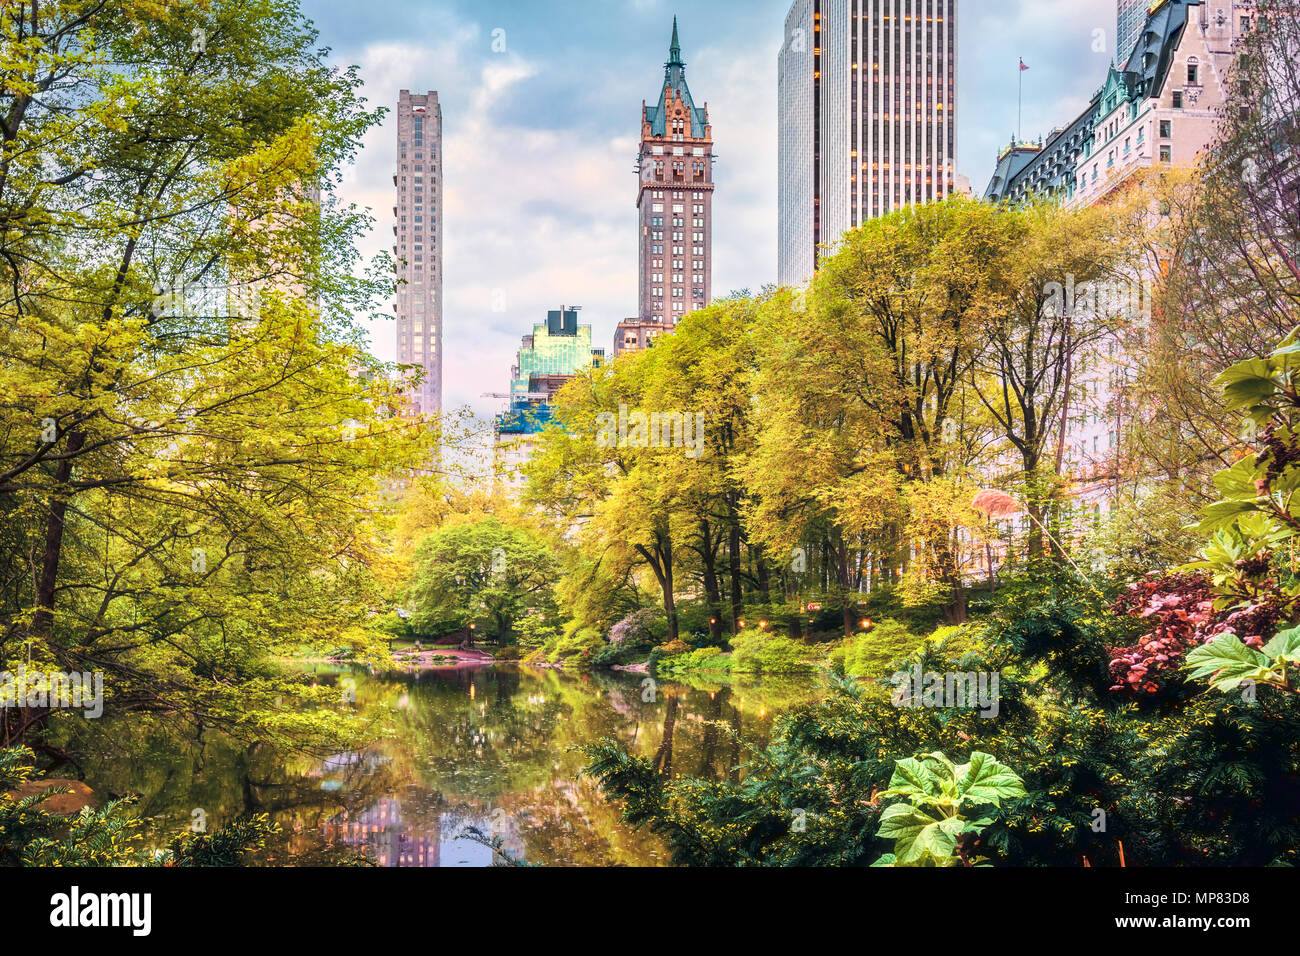 L'étang dans Central Park, New York City Photo Stock